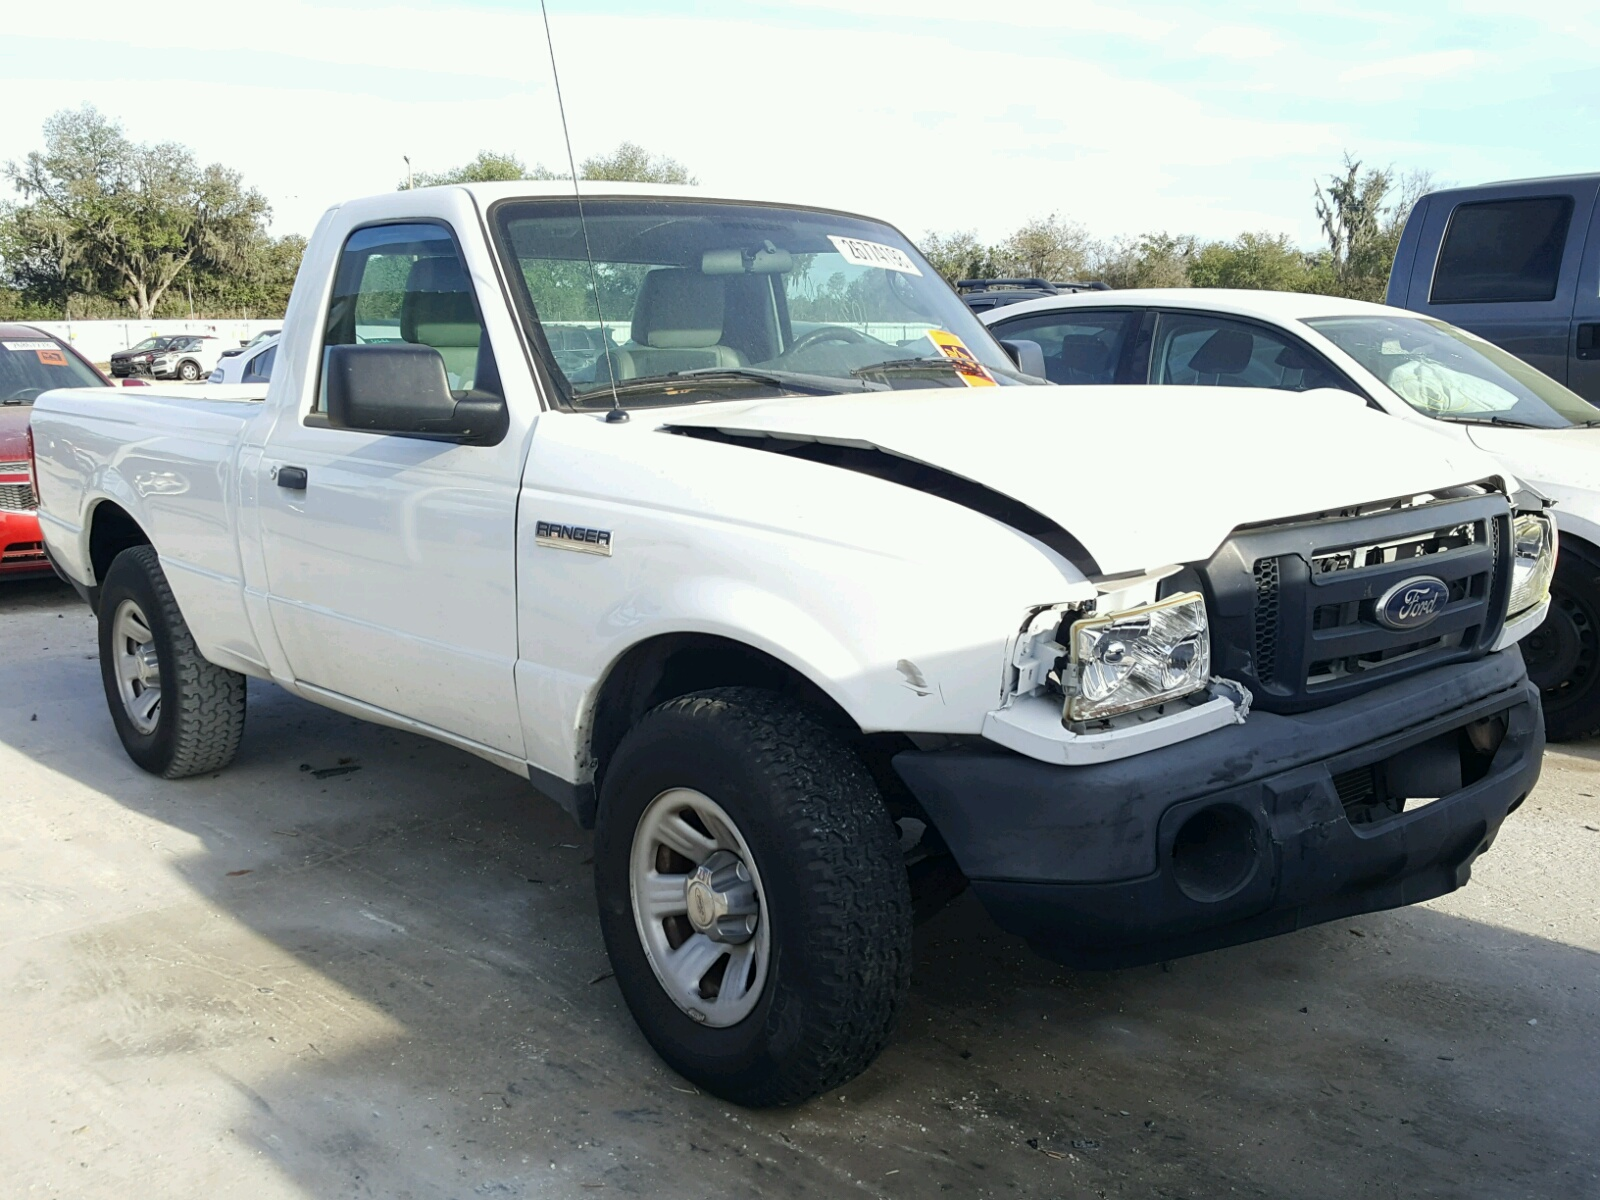 1ftkr1ad5bpa14766 2011 ford ranger 2 3l left view